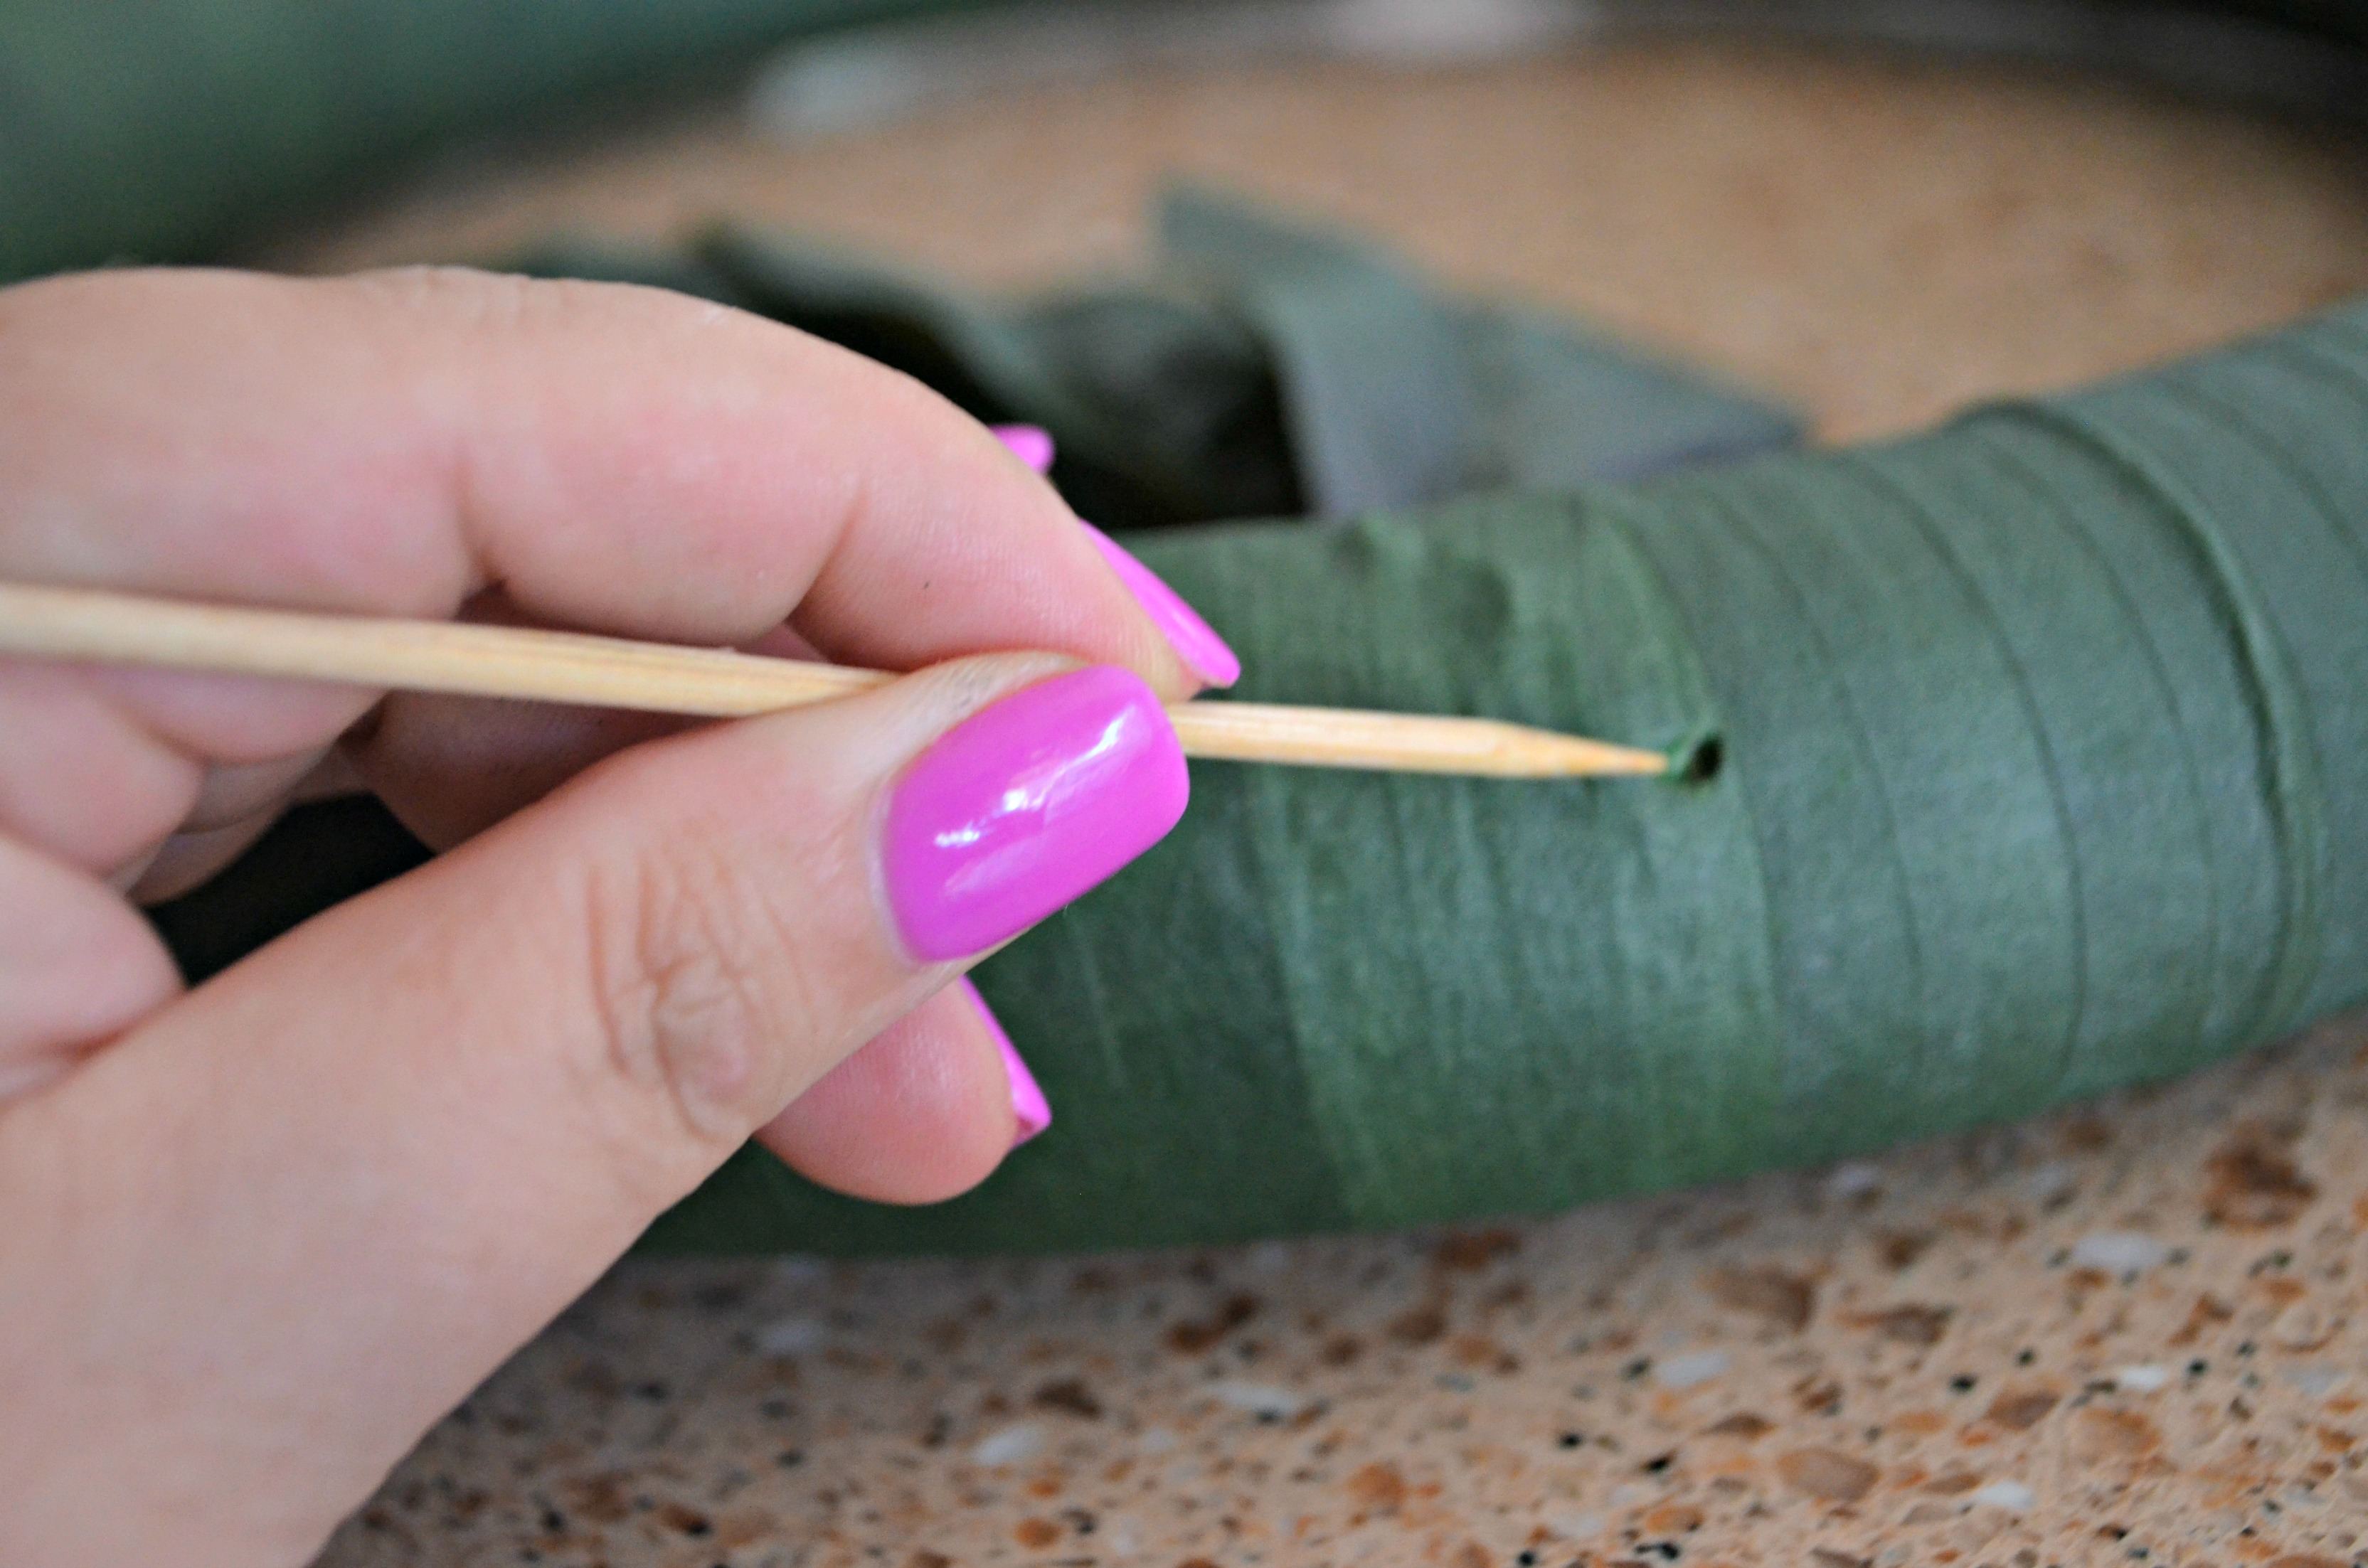 Poke a hole where leaves will go for better adhesion.